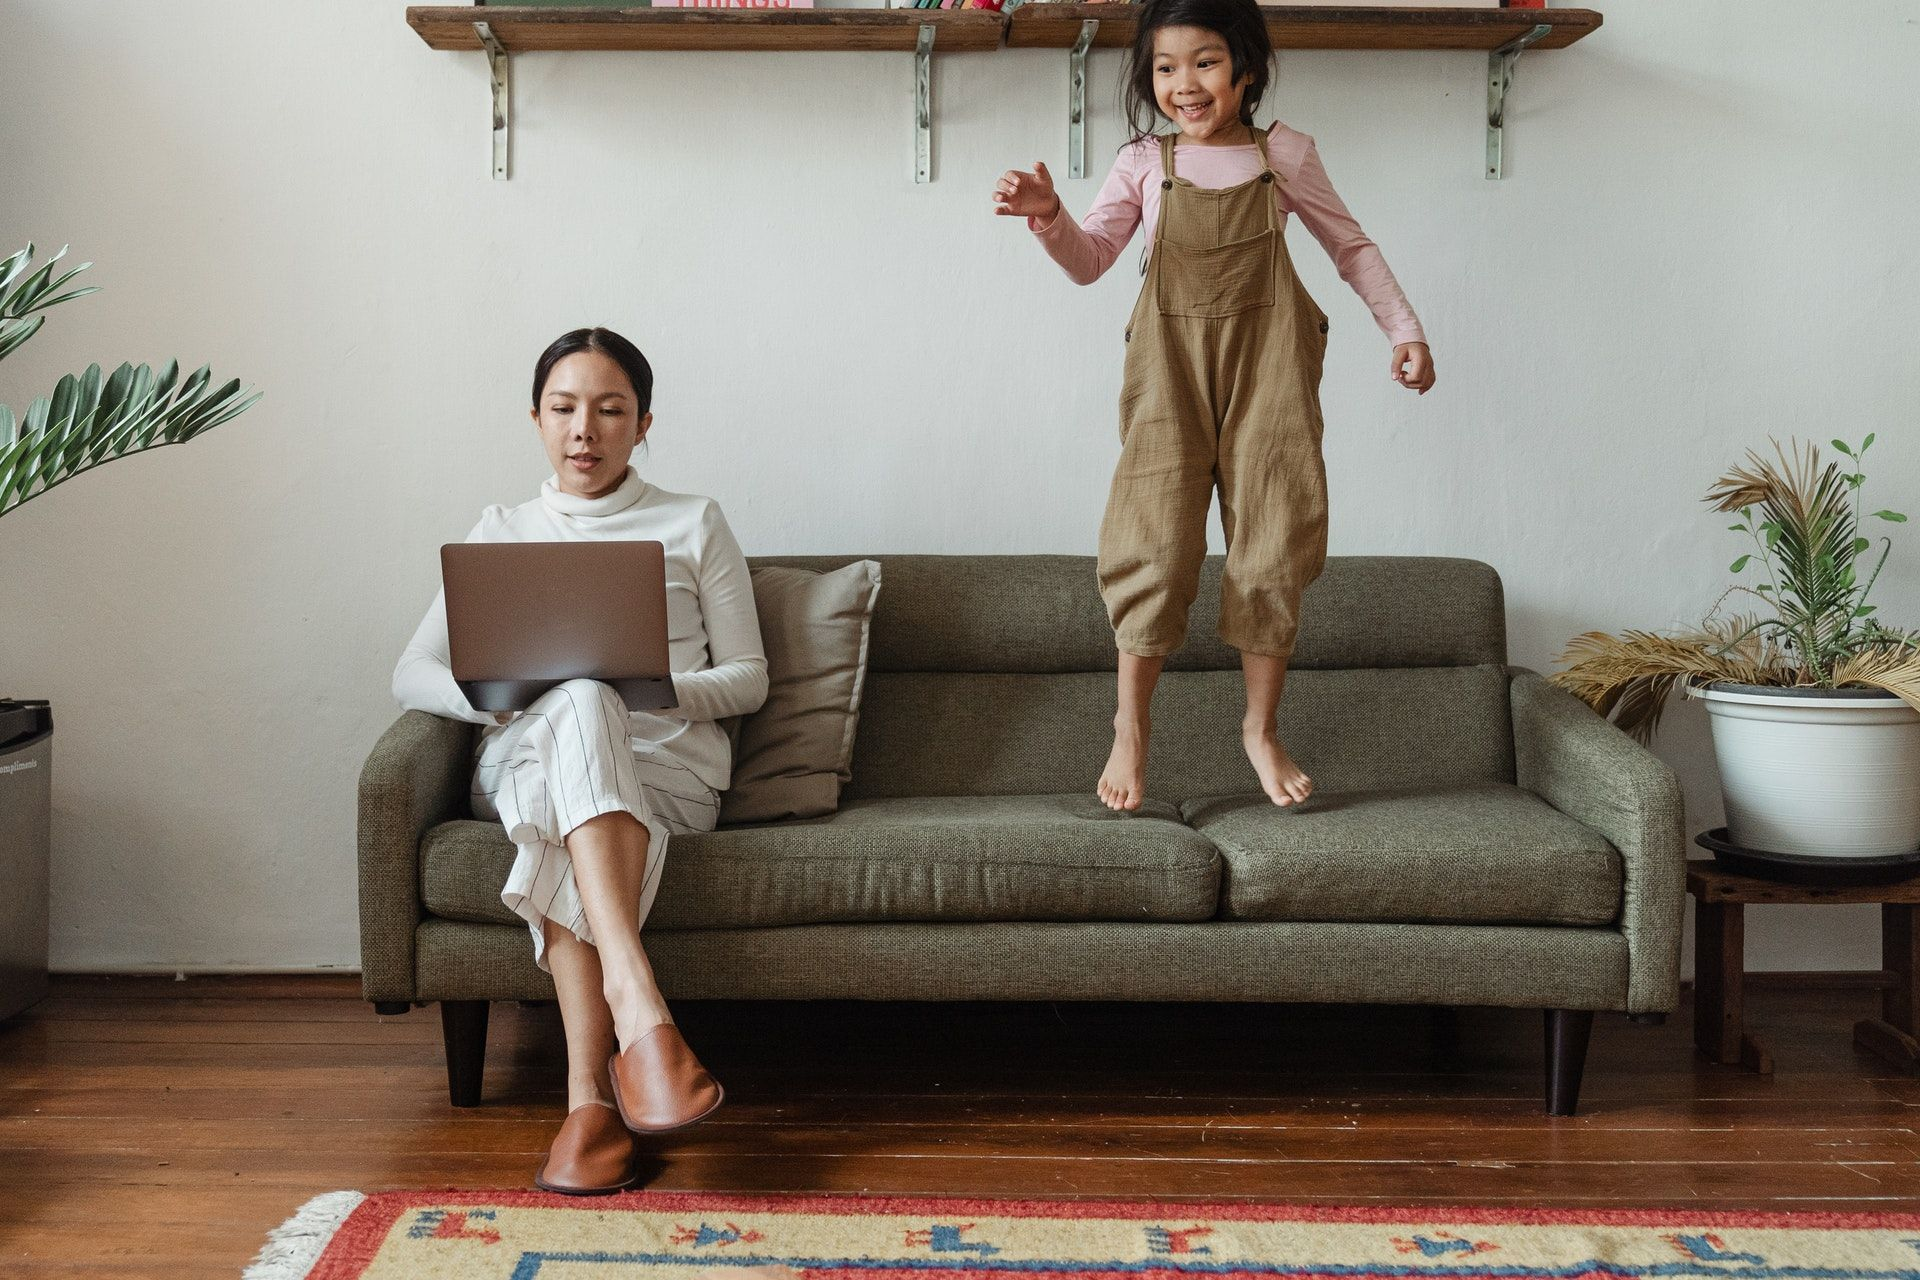 Effective hybrid work from home policies will provide flexibility for a team that increasingly desires it.